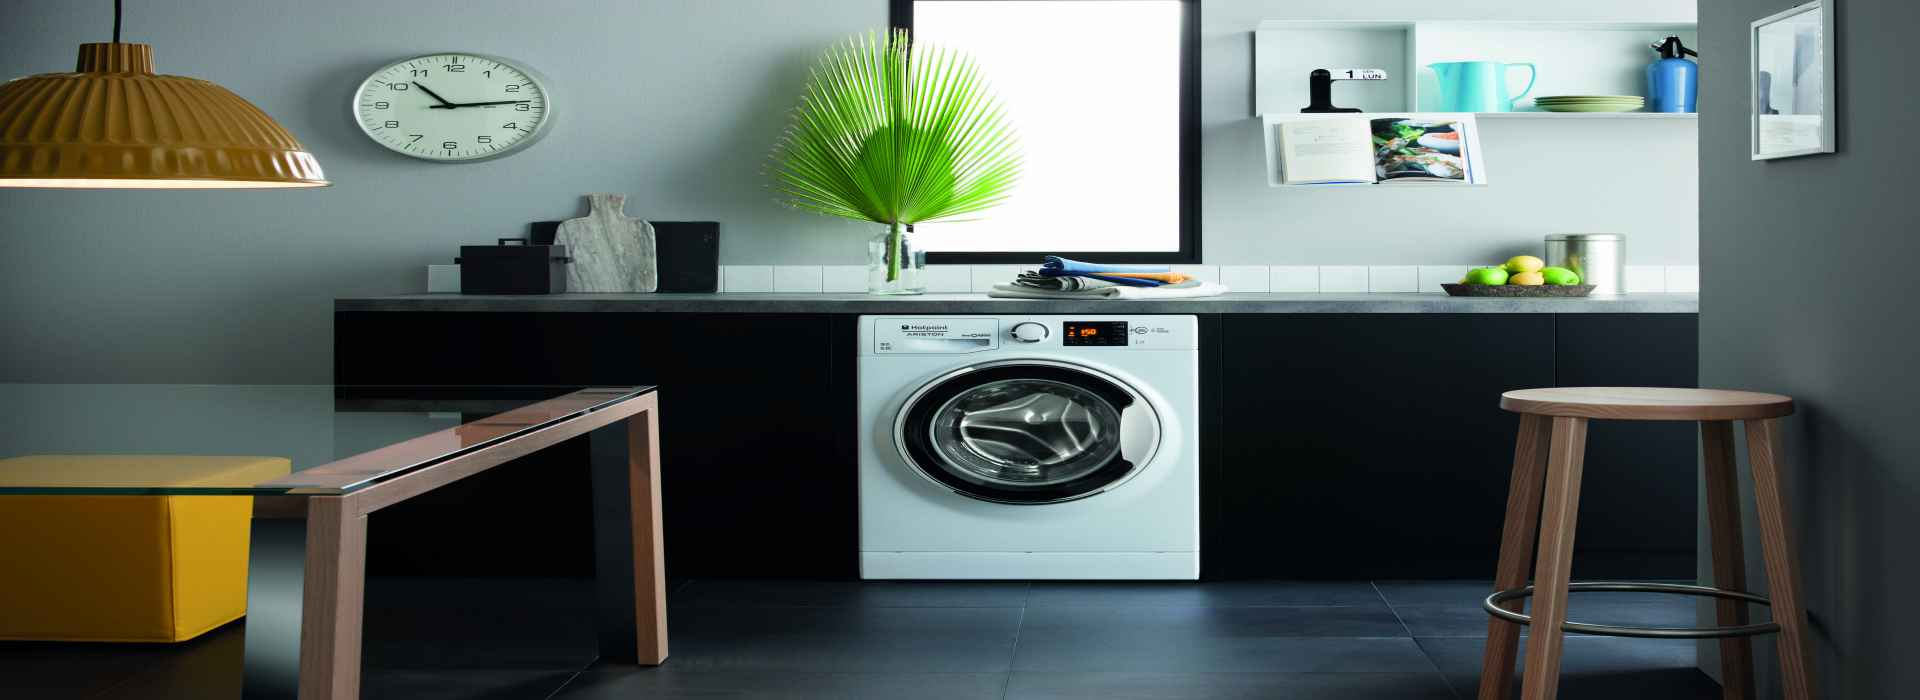 Hotpoint customer service uk contact details customerservicedirectory - Costa coffee head office telephone number ...